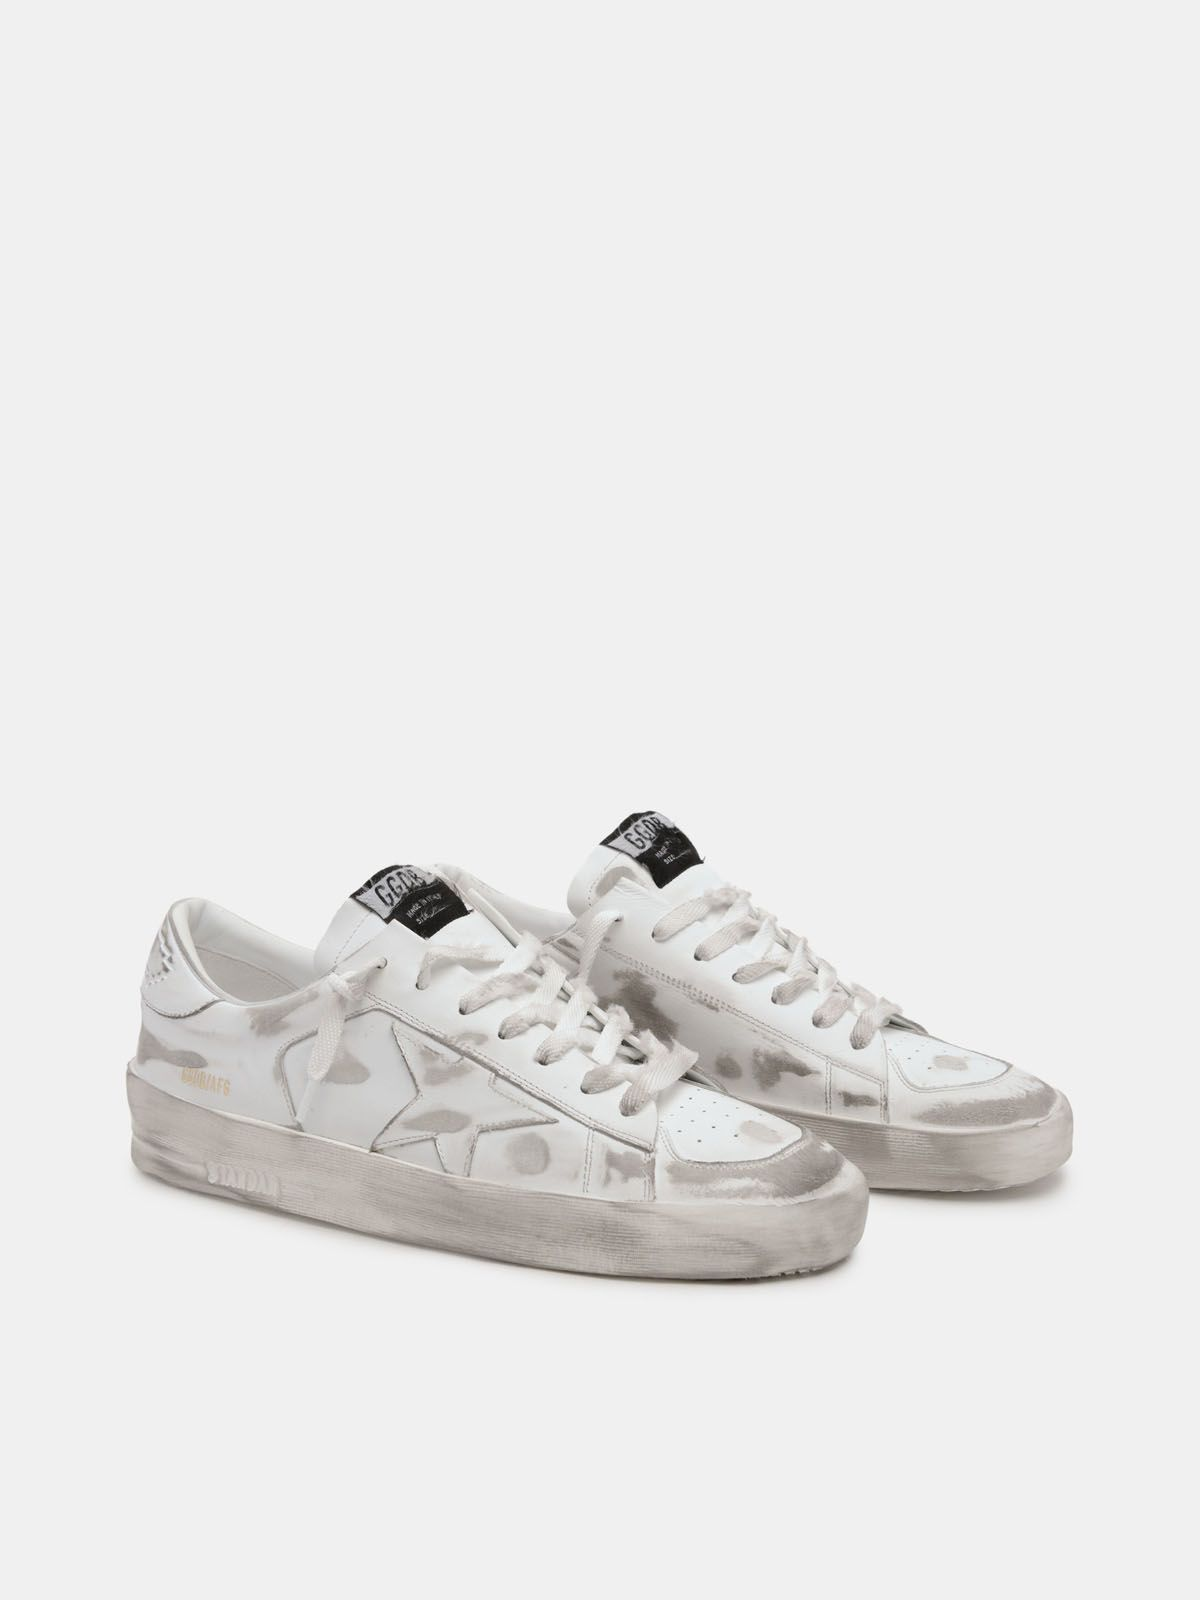 Golden Goose - Stardan sneakers in white leather with lived-in treatment in